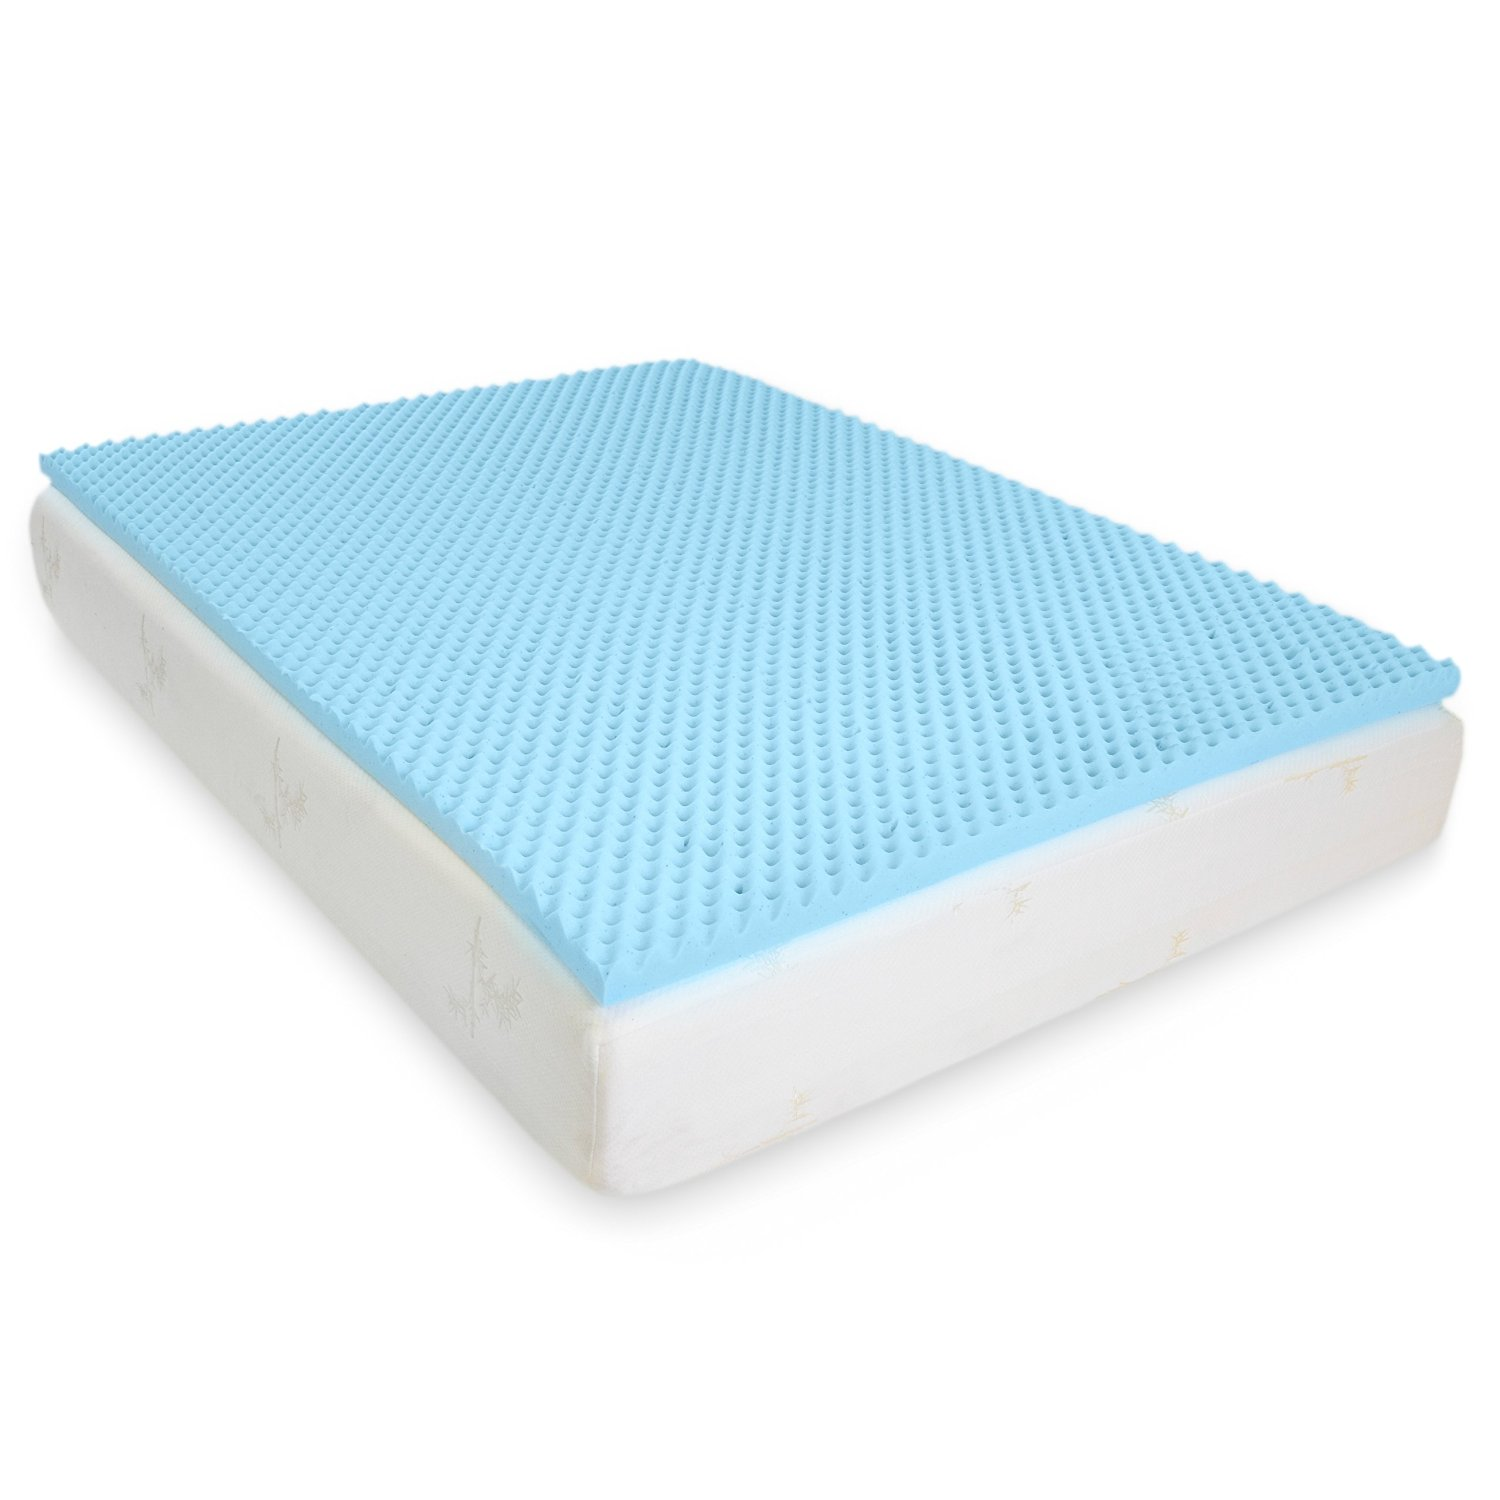 The Best Memoryfoam Mattress Topper Go For Memory Foam Or Latex Weathered Wood Bed With